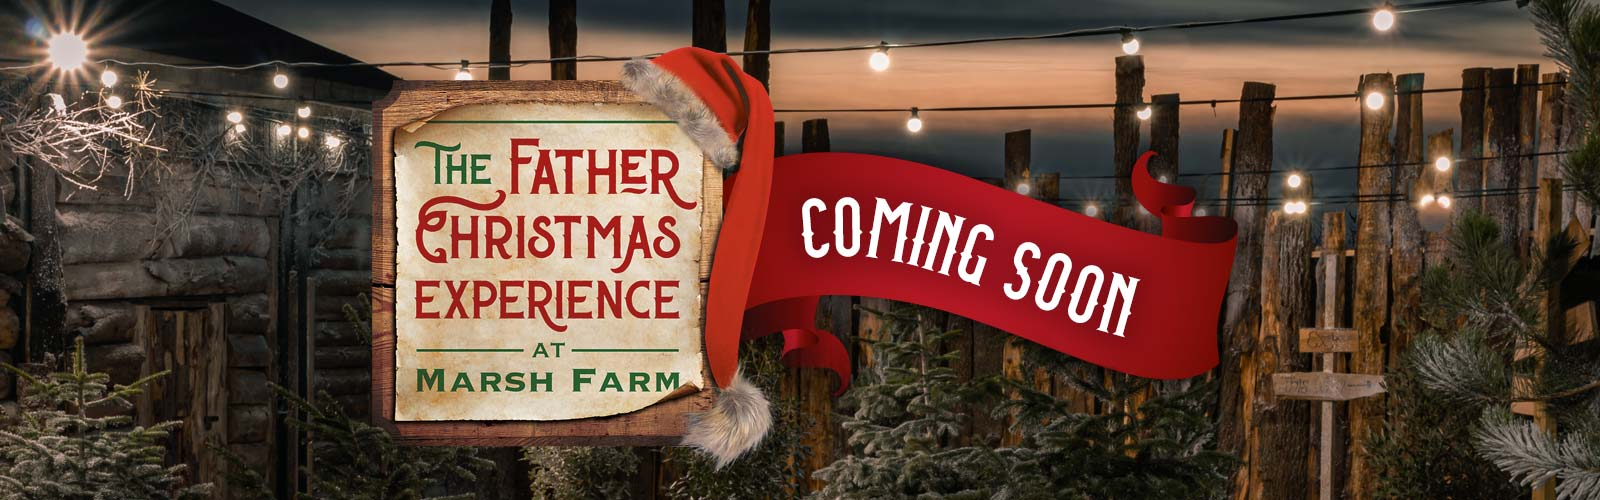 Father Christmas Experience